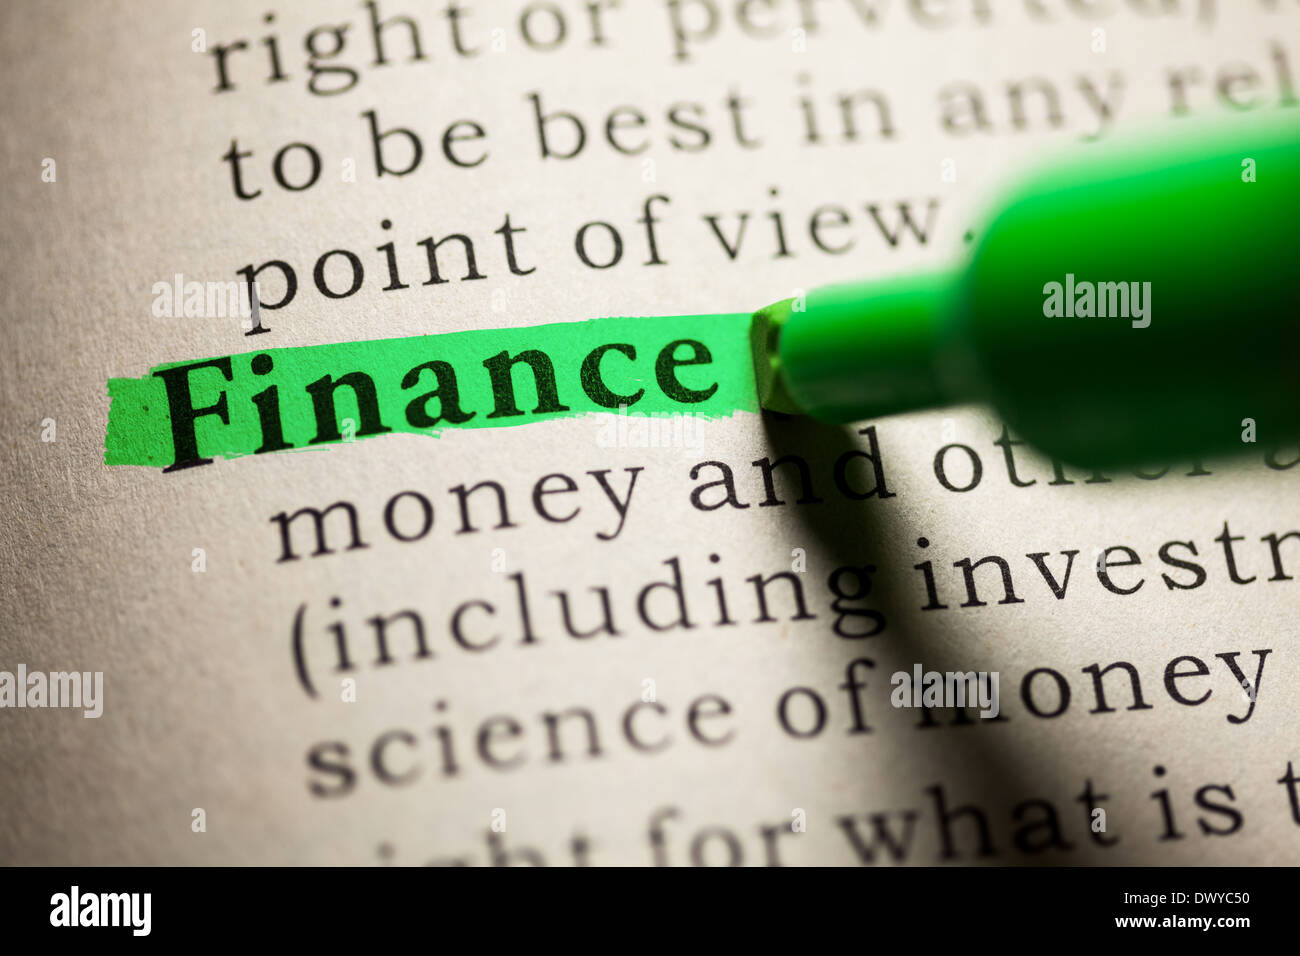 Fake Dictionary, definition of the word Finance Stock Photo: 67599756 - Alamy